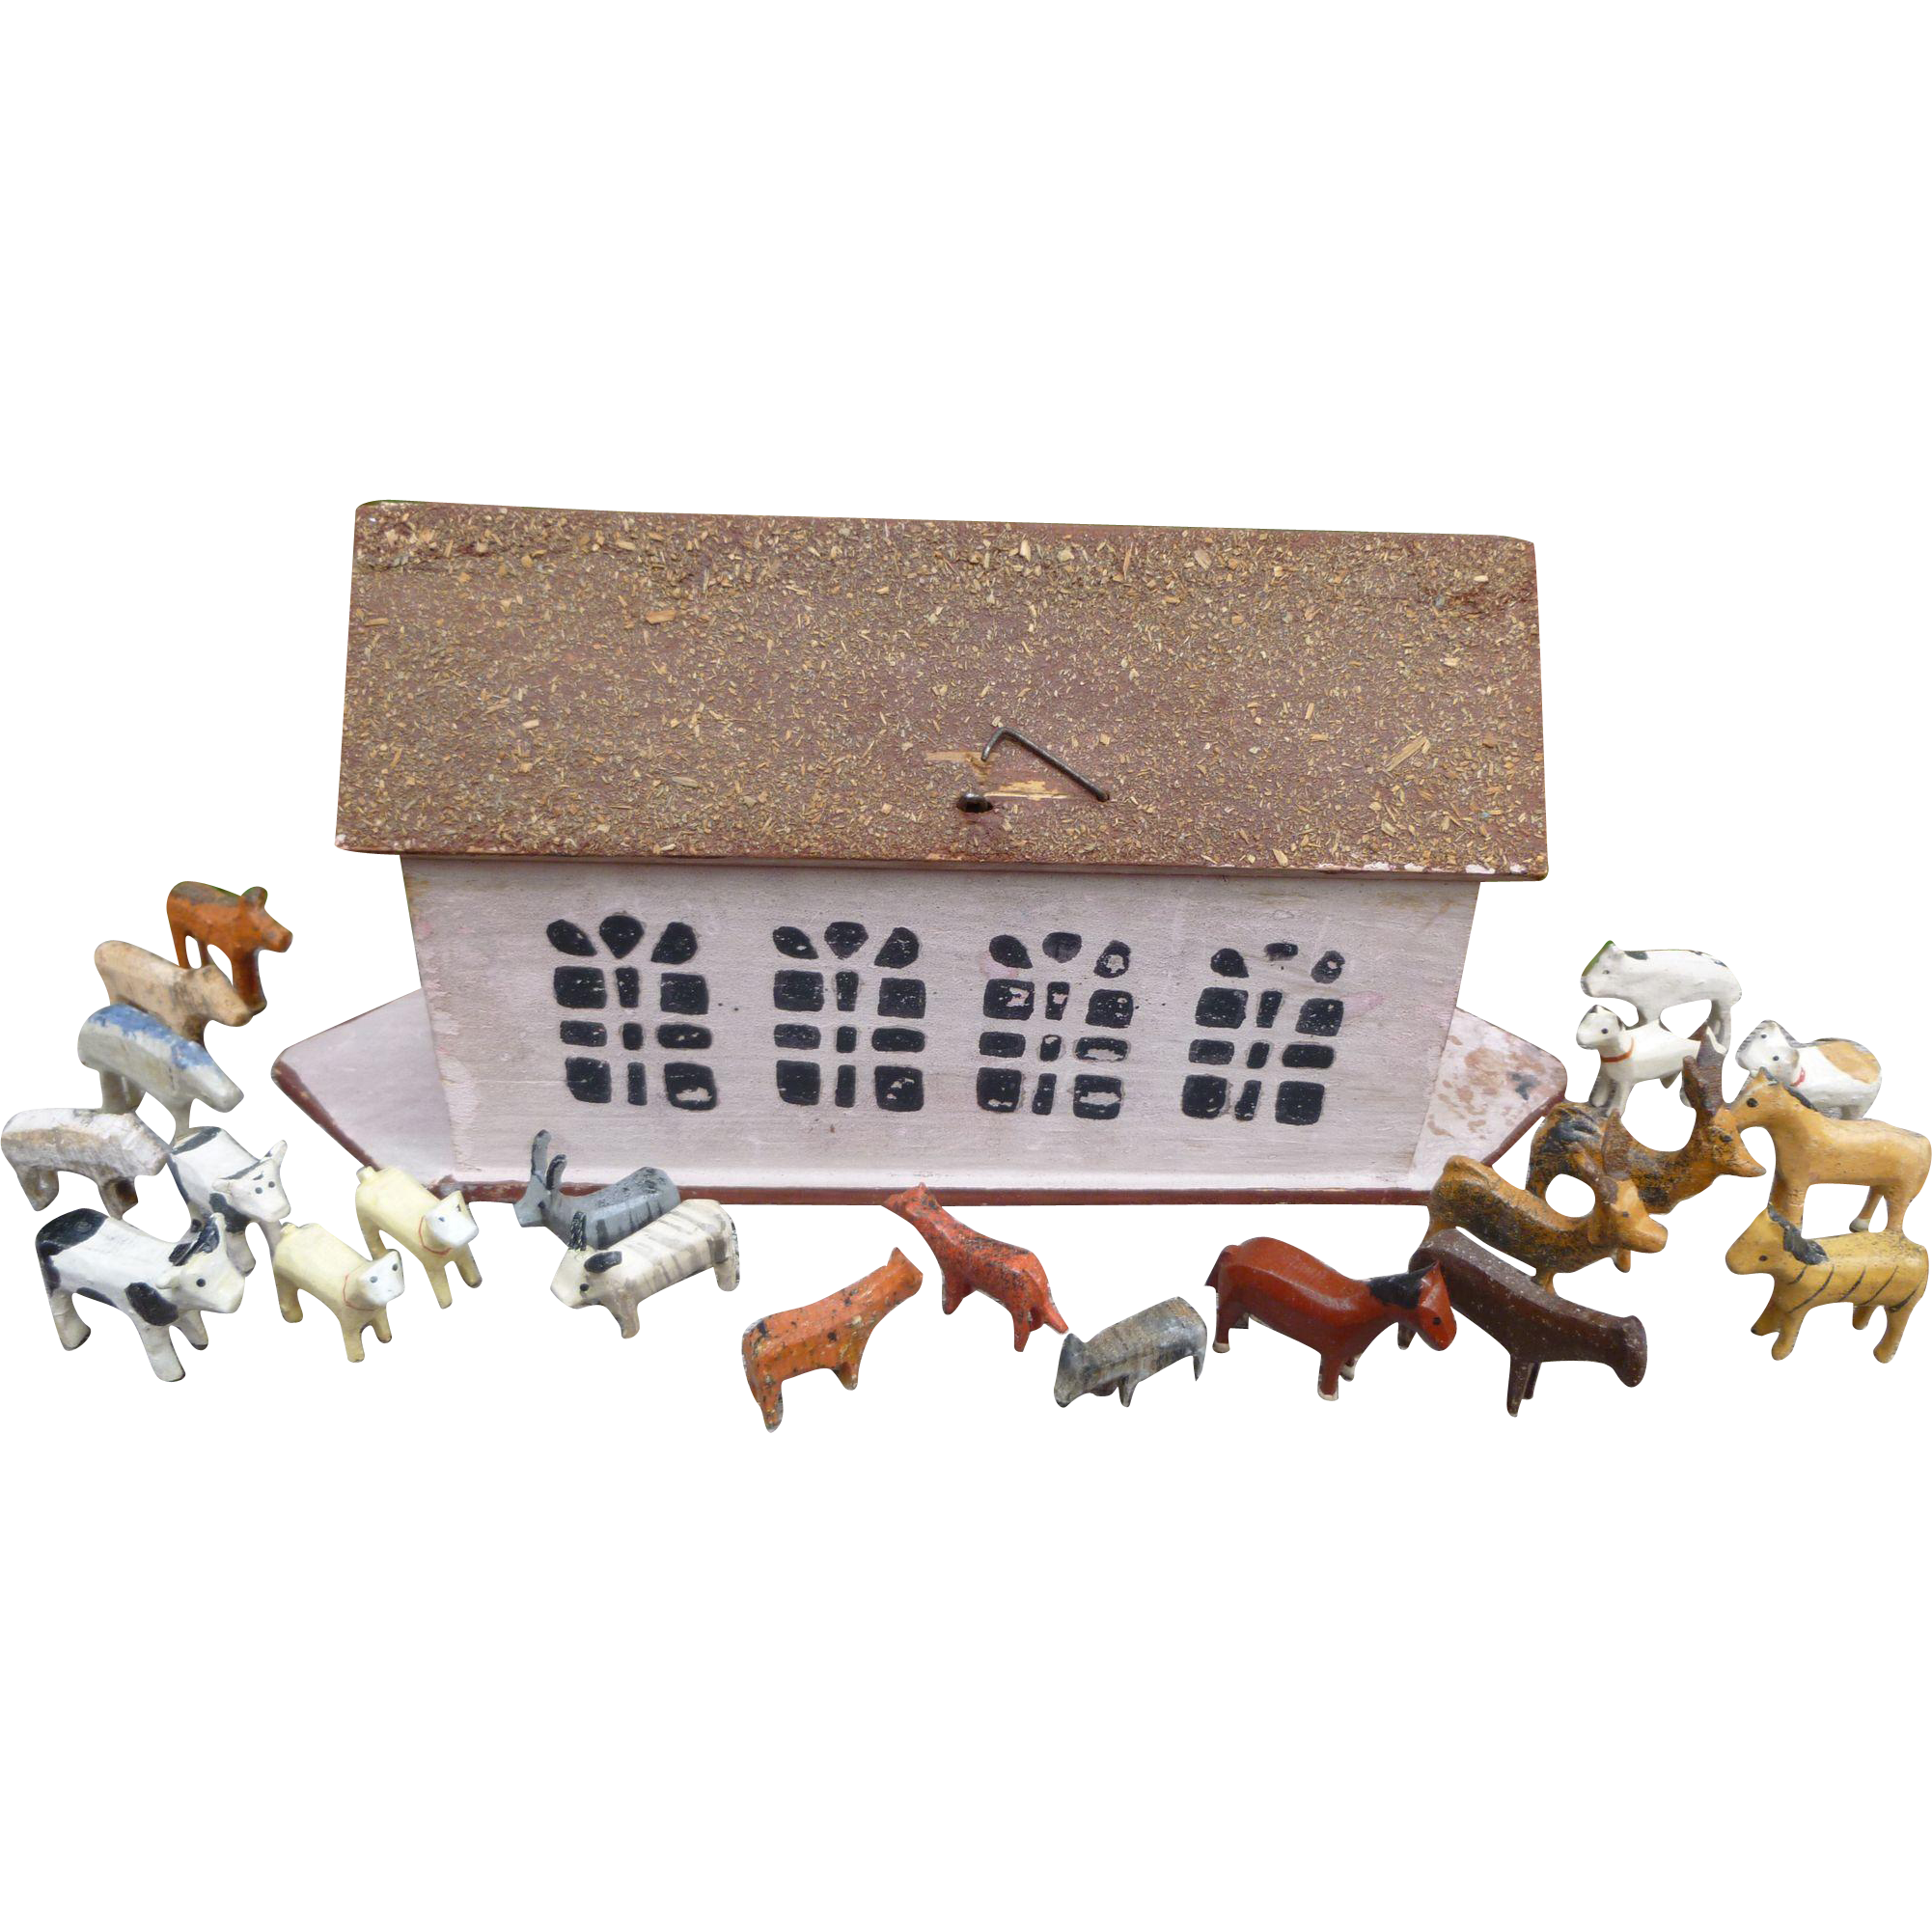 Flat Bottom Noah's Ark Toy With Carved Animals